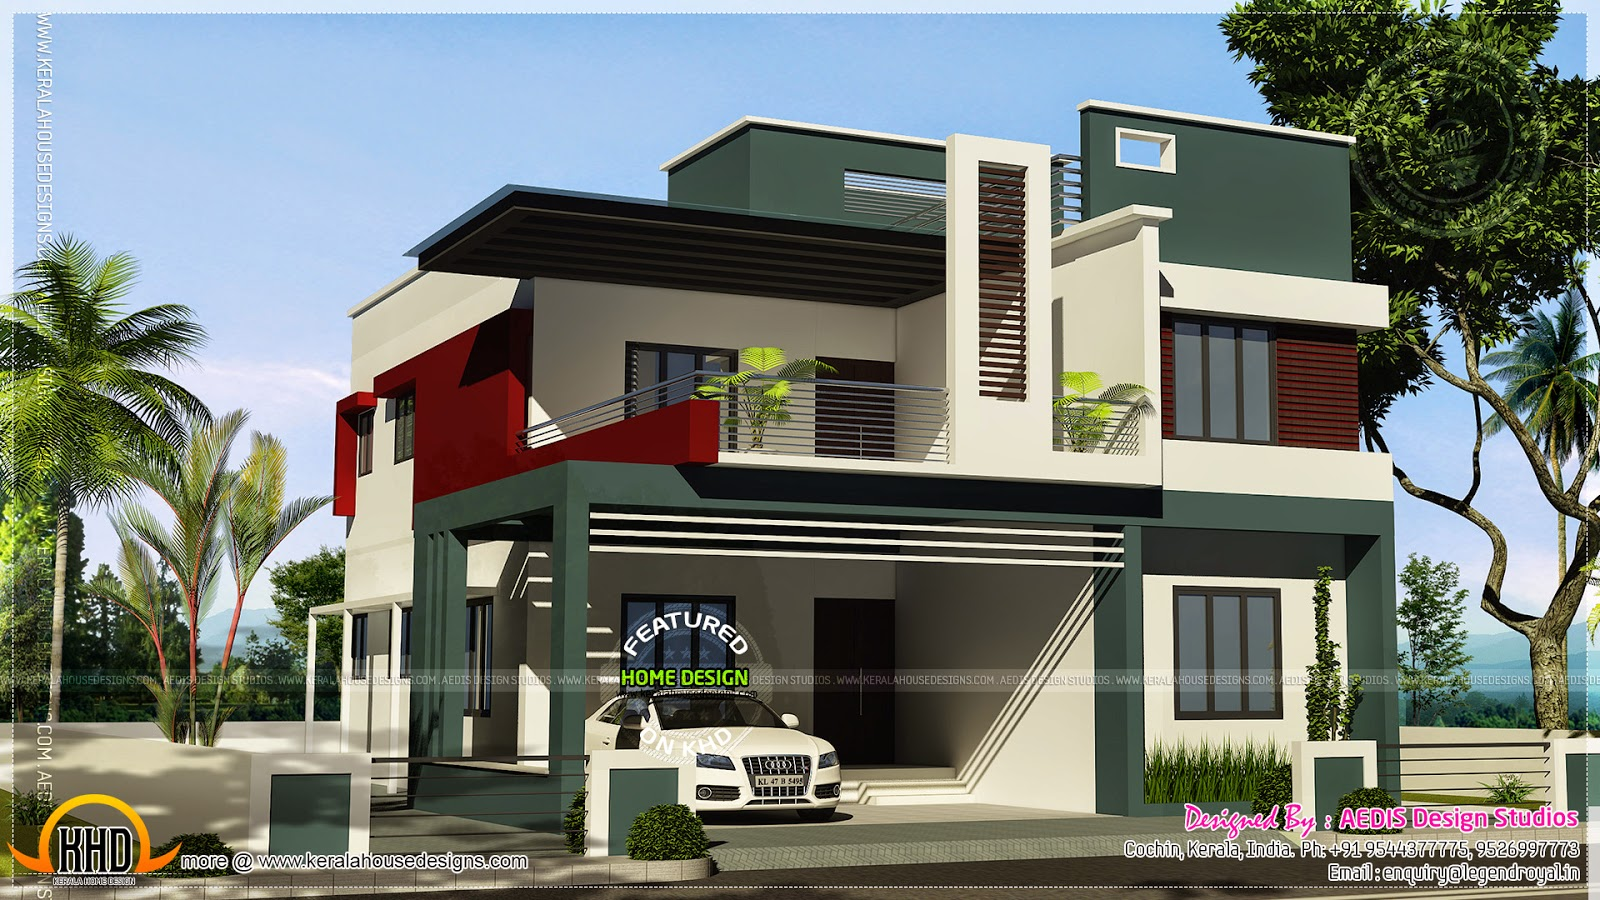 Duplex house plans south indian style home photo style for Duplex home plans indian style